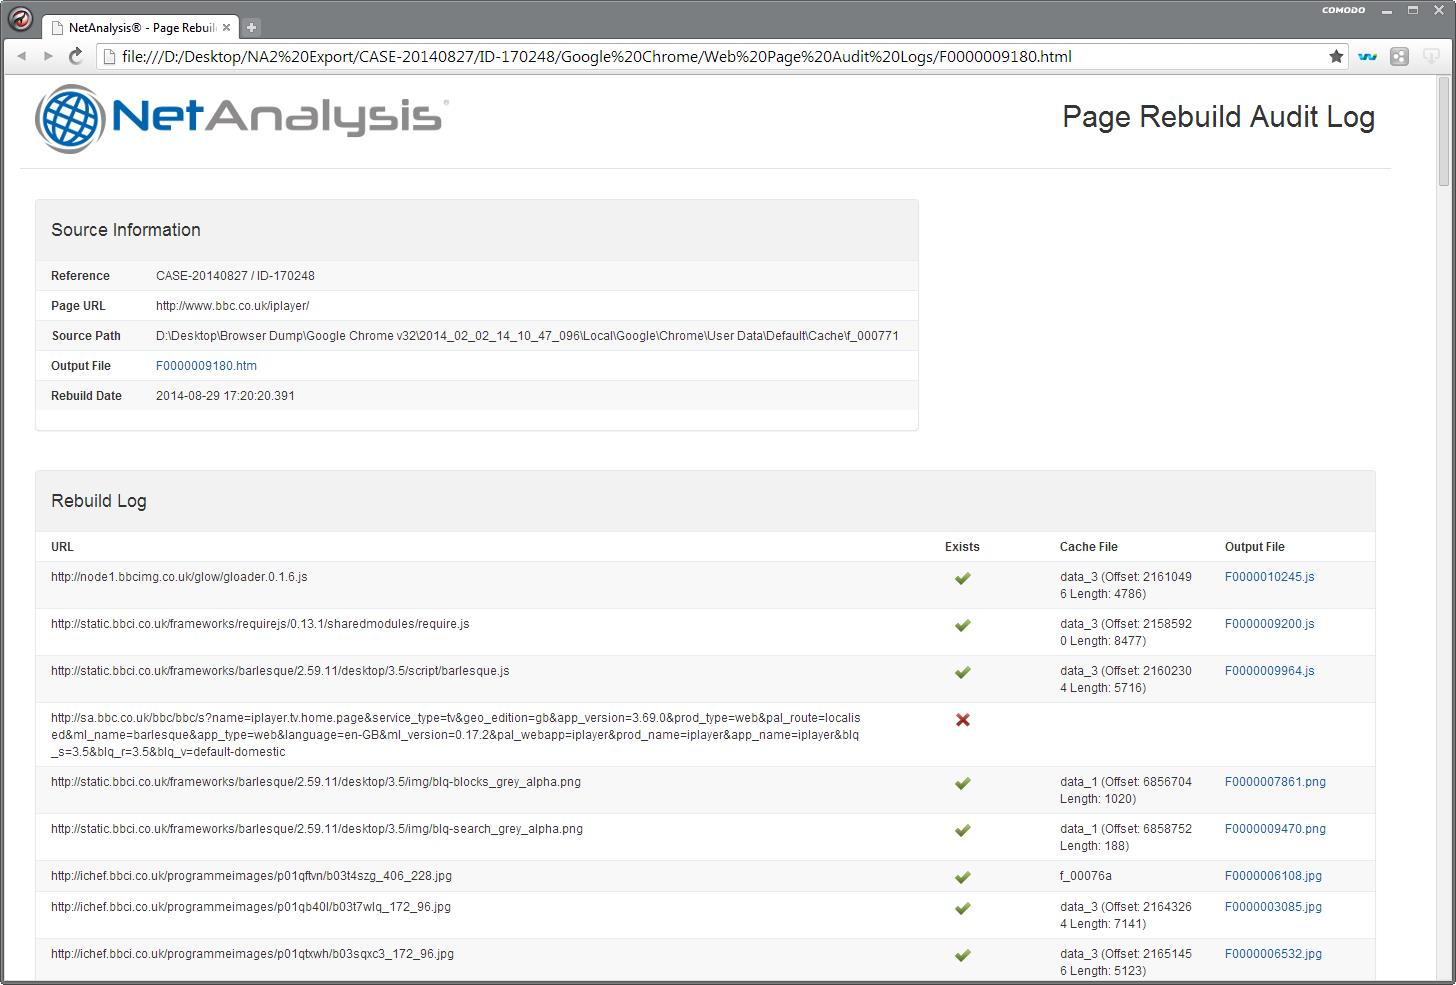 Digital Detective NetAnalysis® showing a Page Rebuild Audit Log